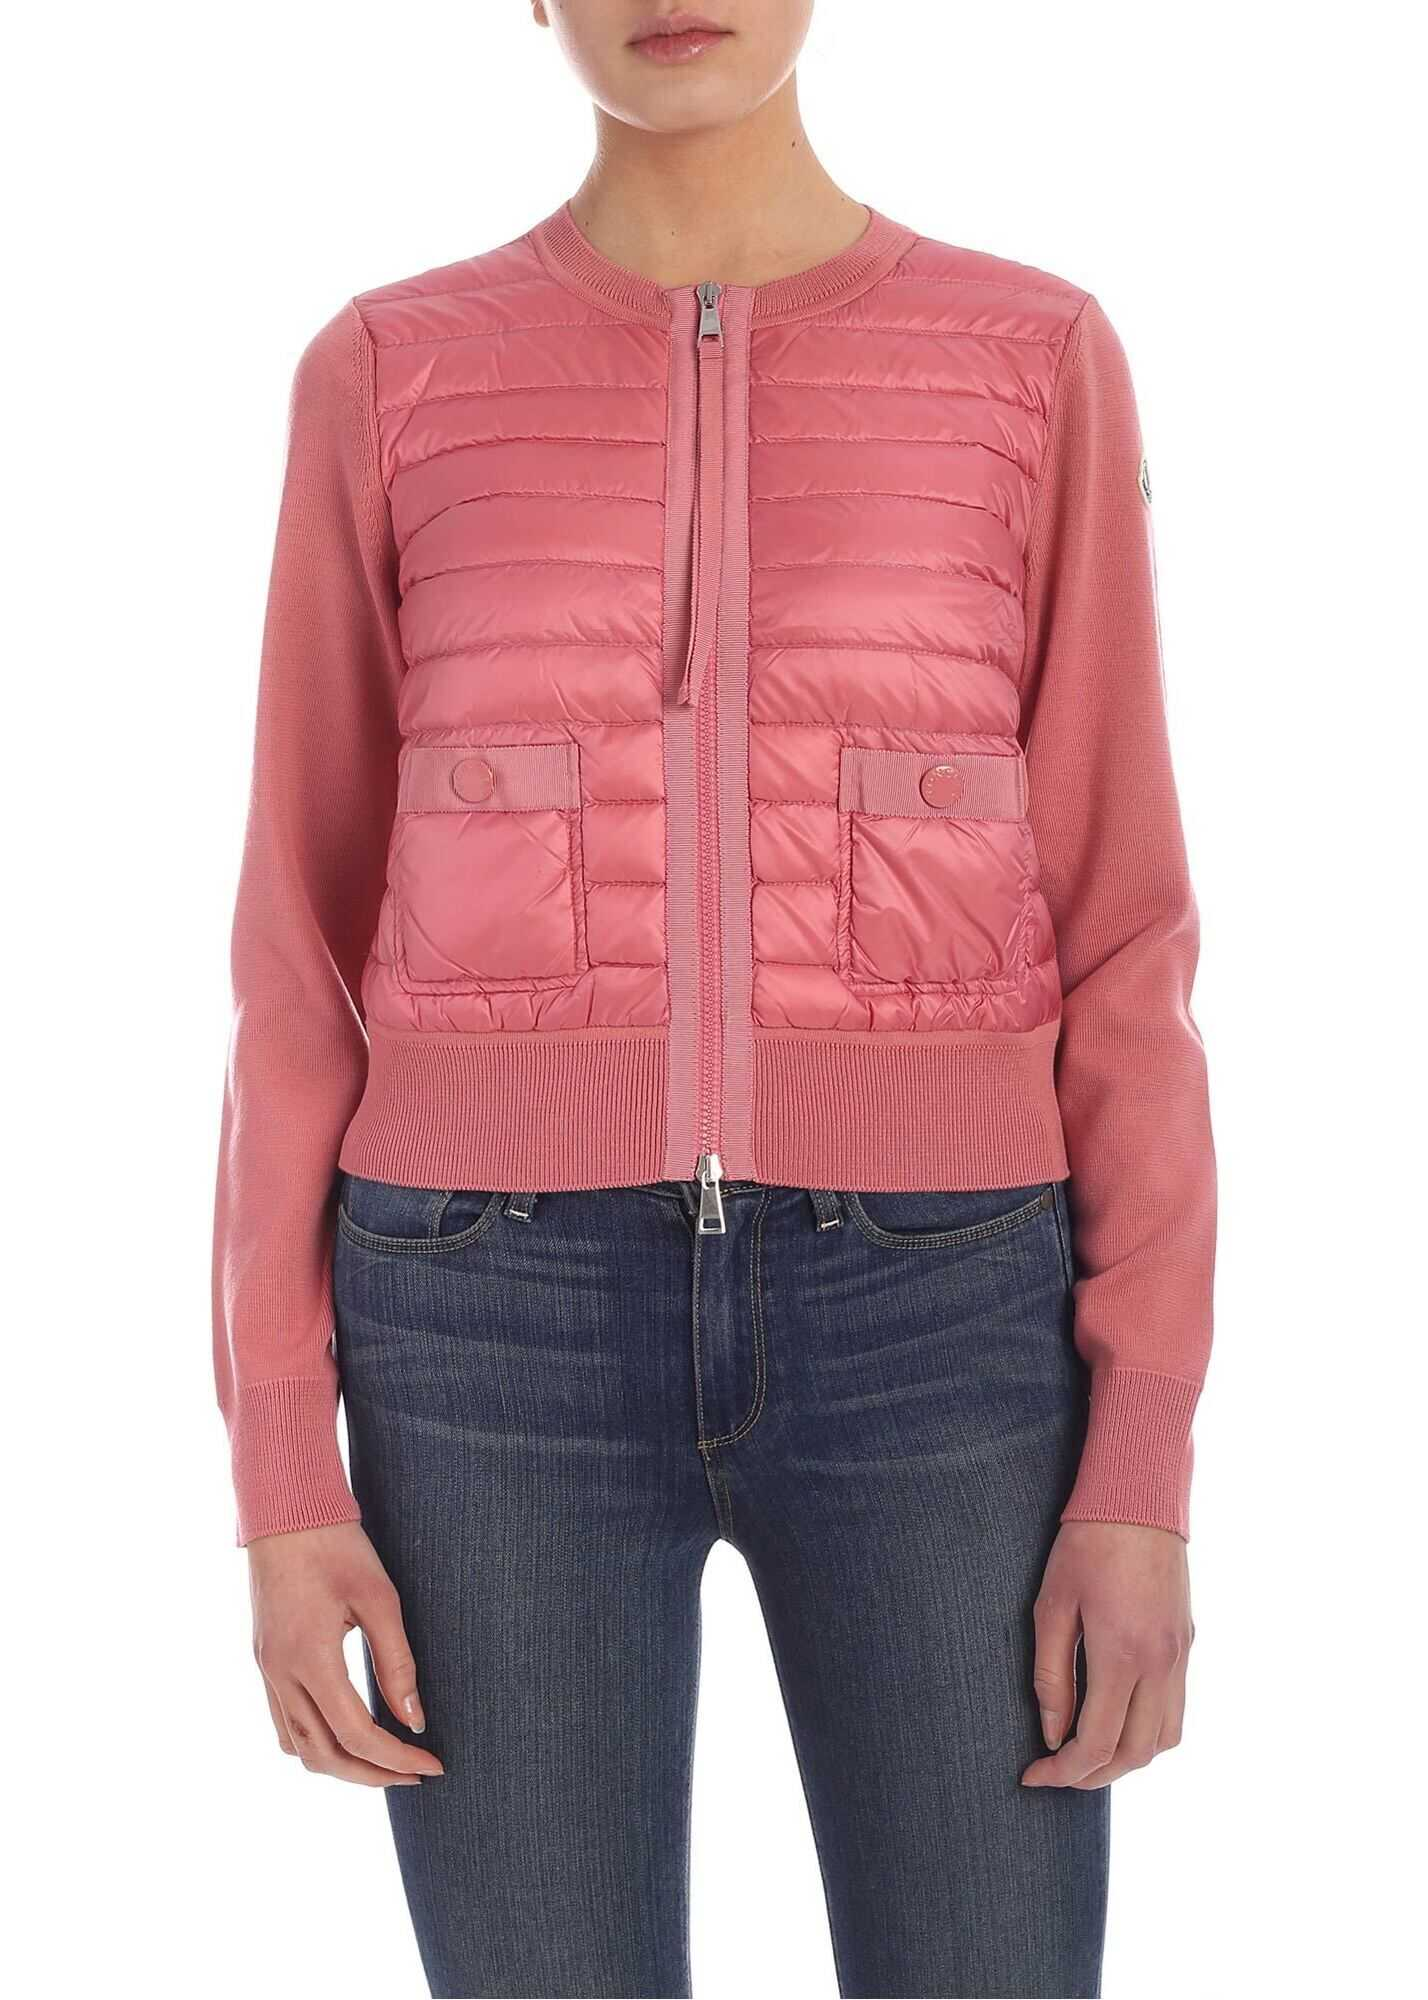 Padded Insert Cardigan In Pink thumbnail